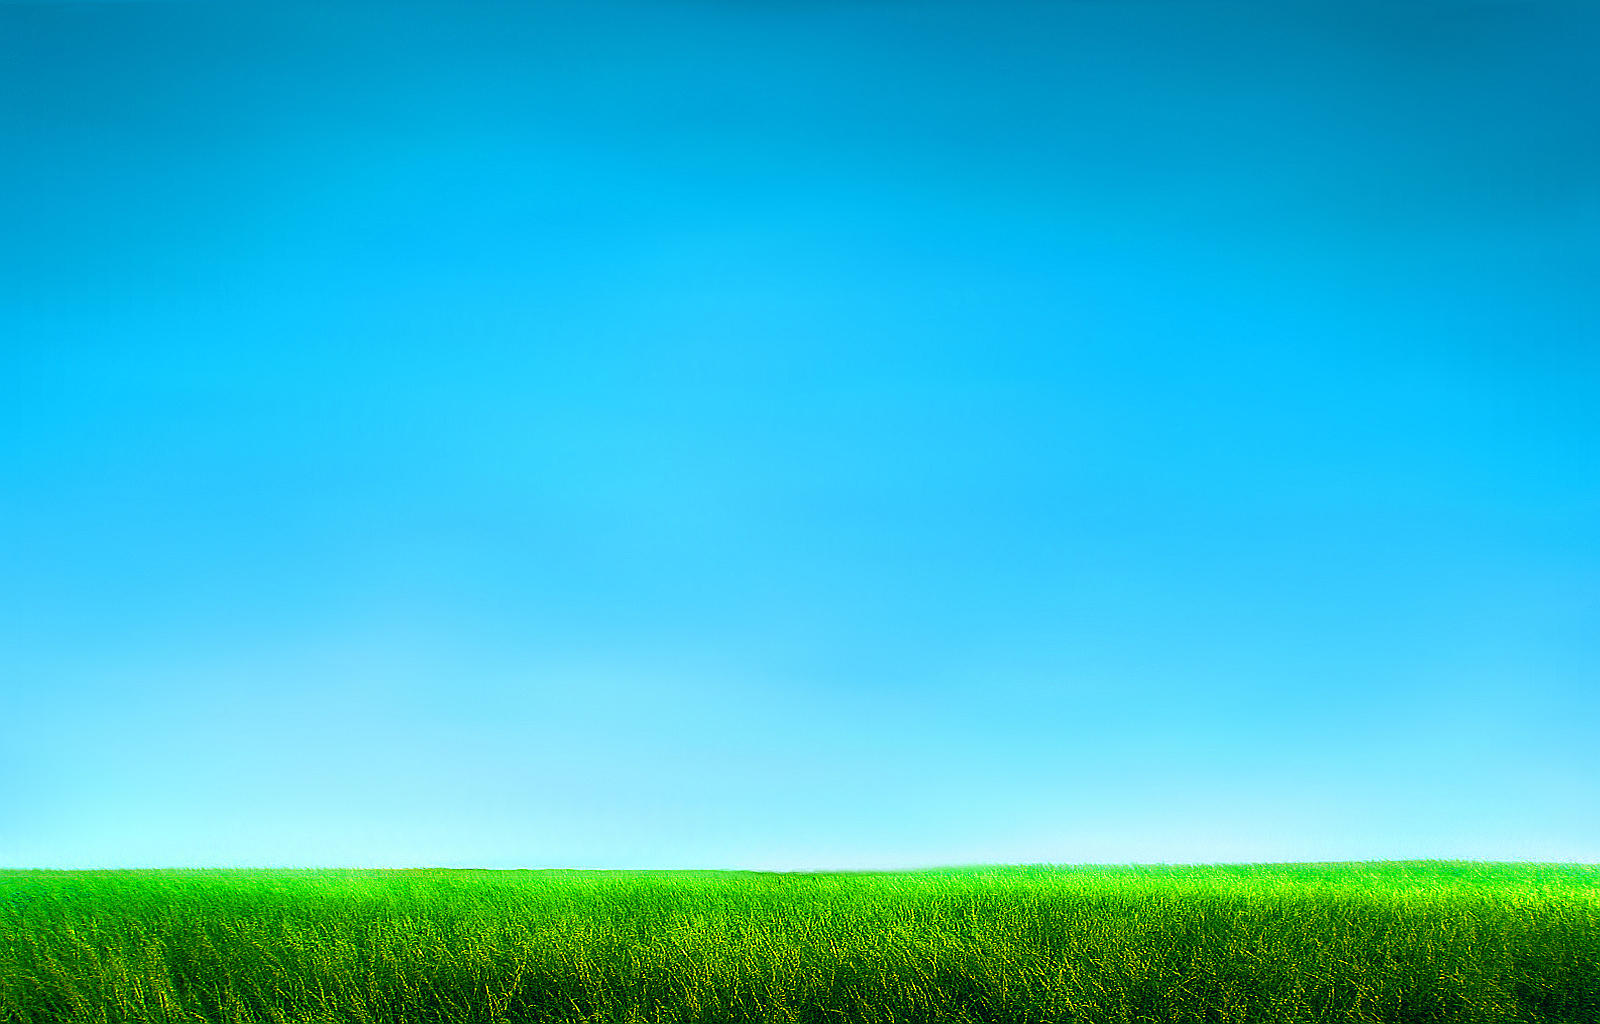 grass background clipart - photo #47